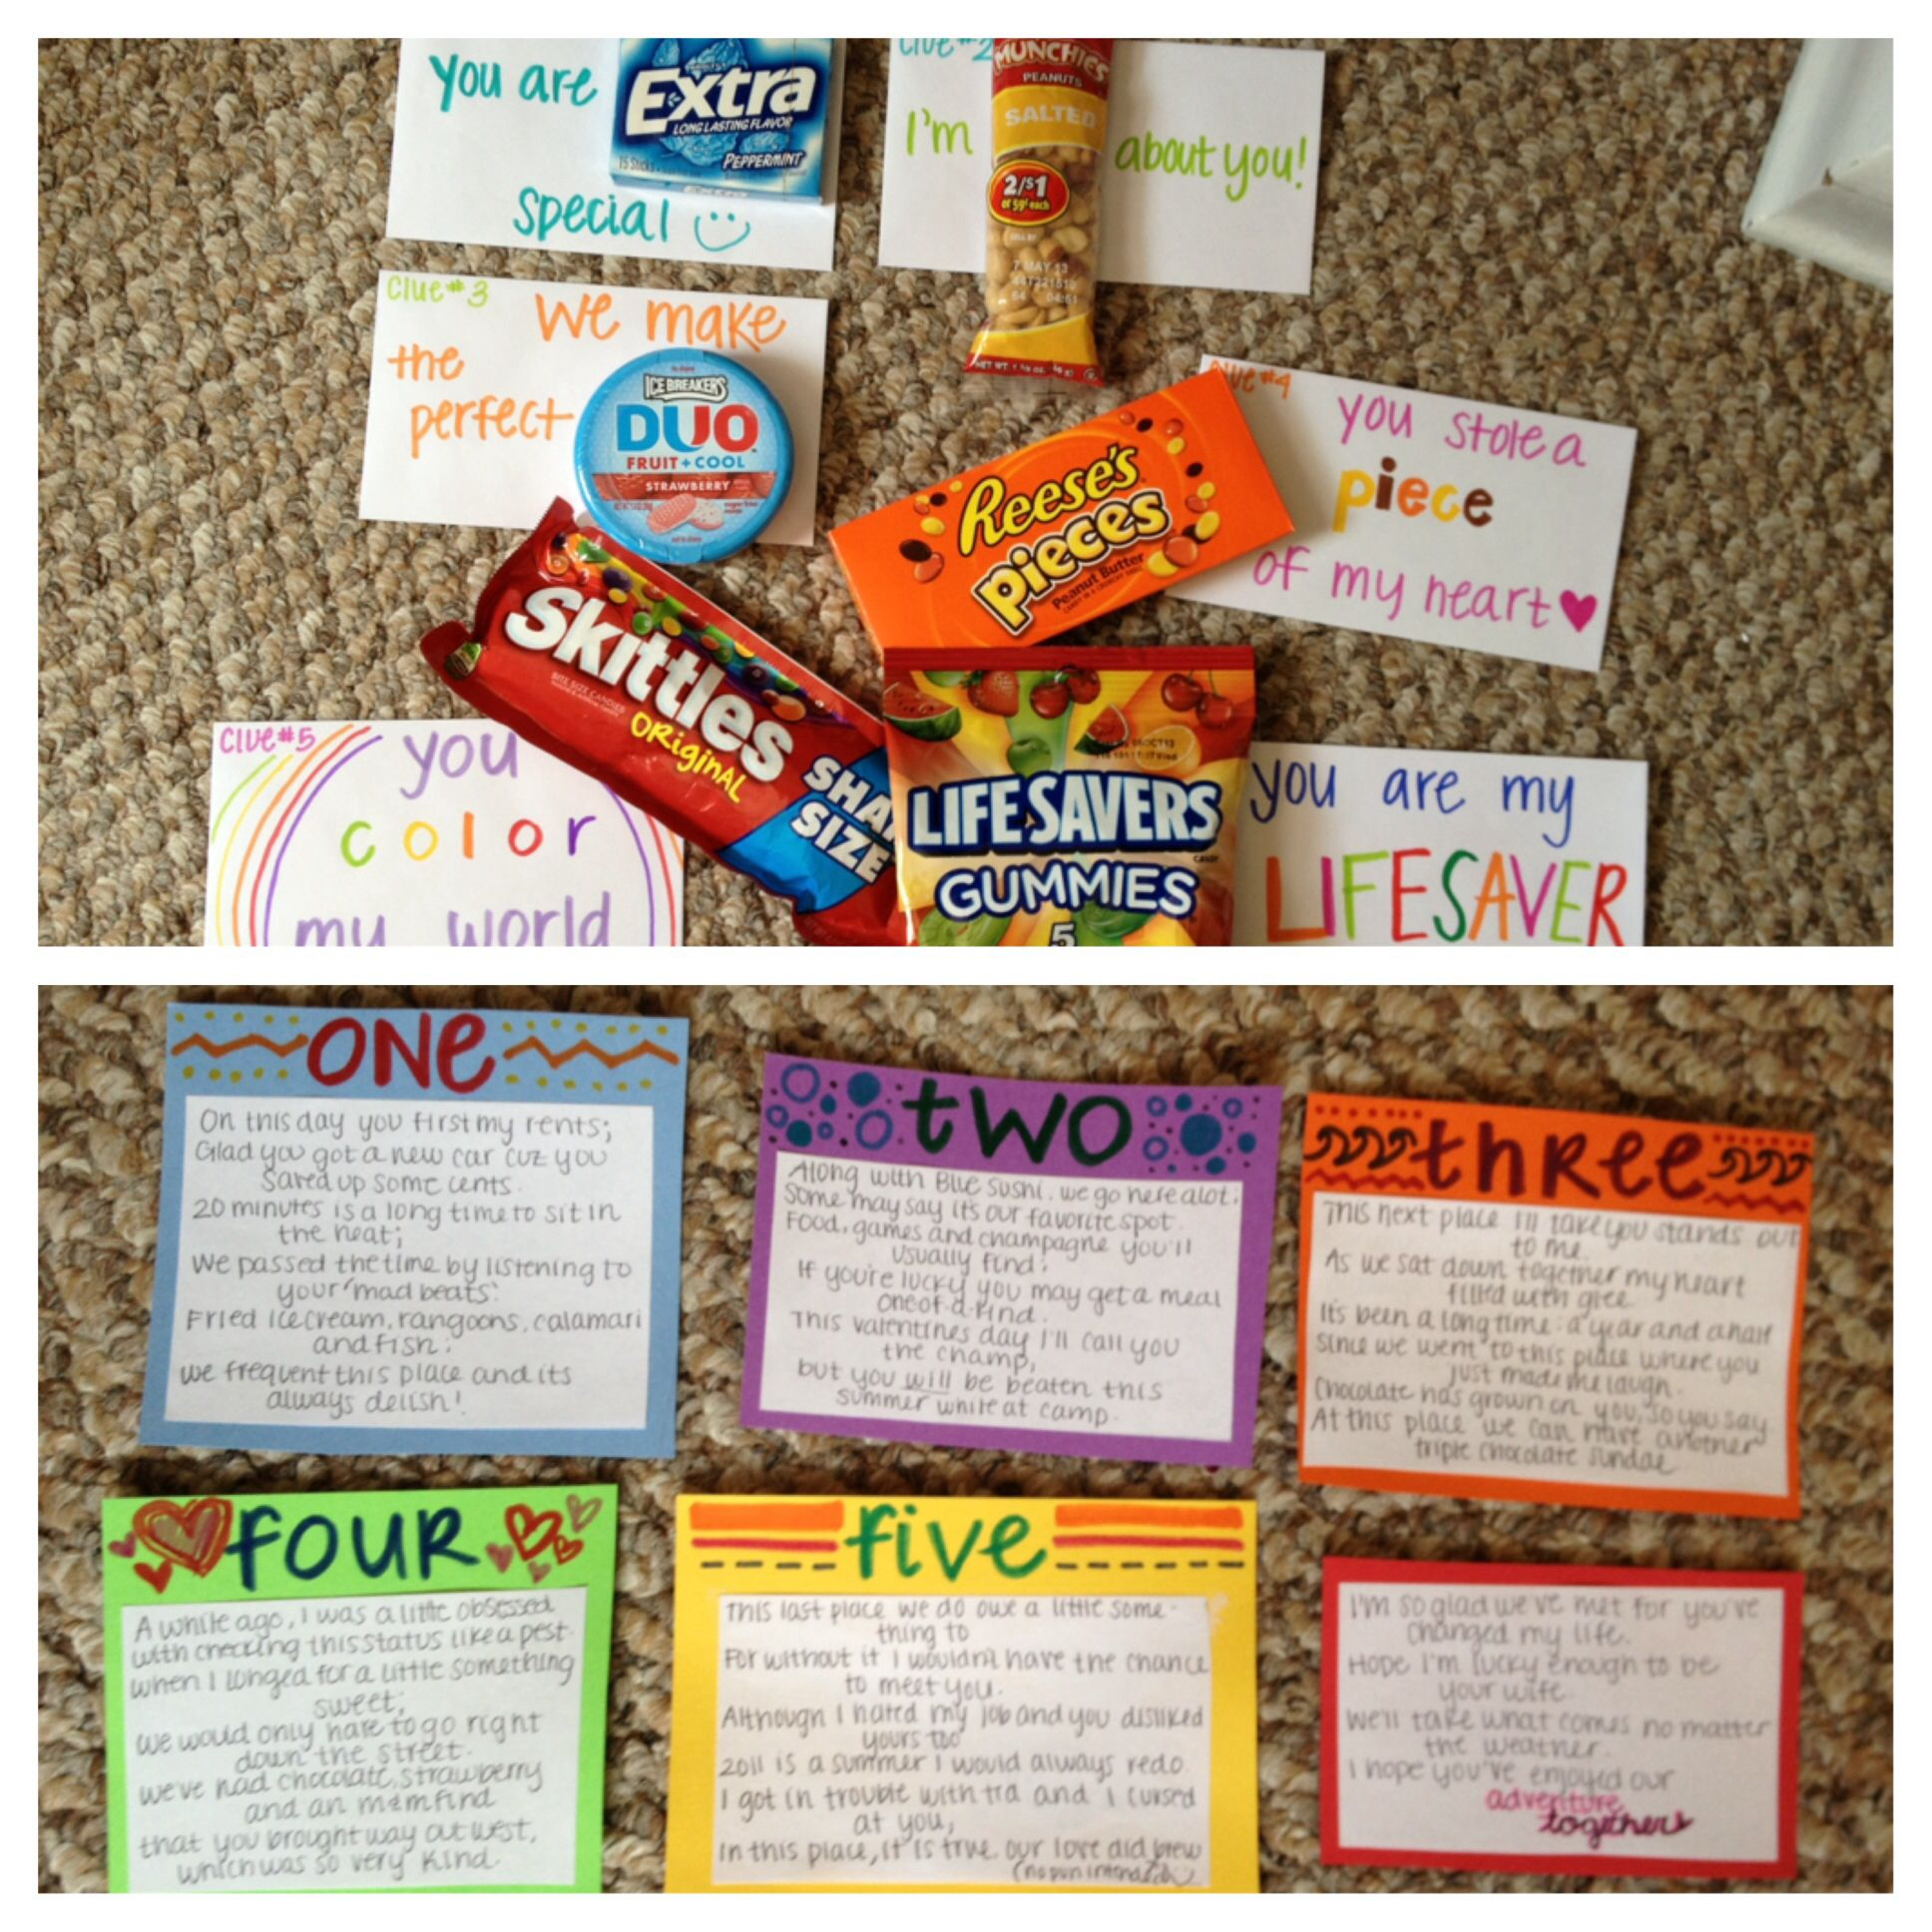 Valentines Gift/surprise For Your Guy. Scavenger Hunt To